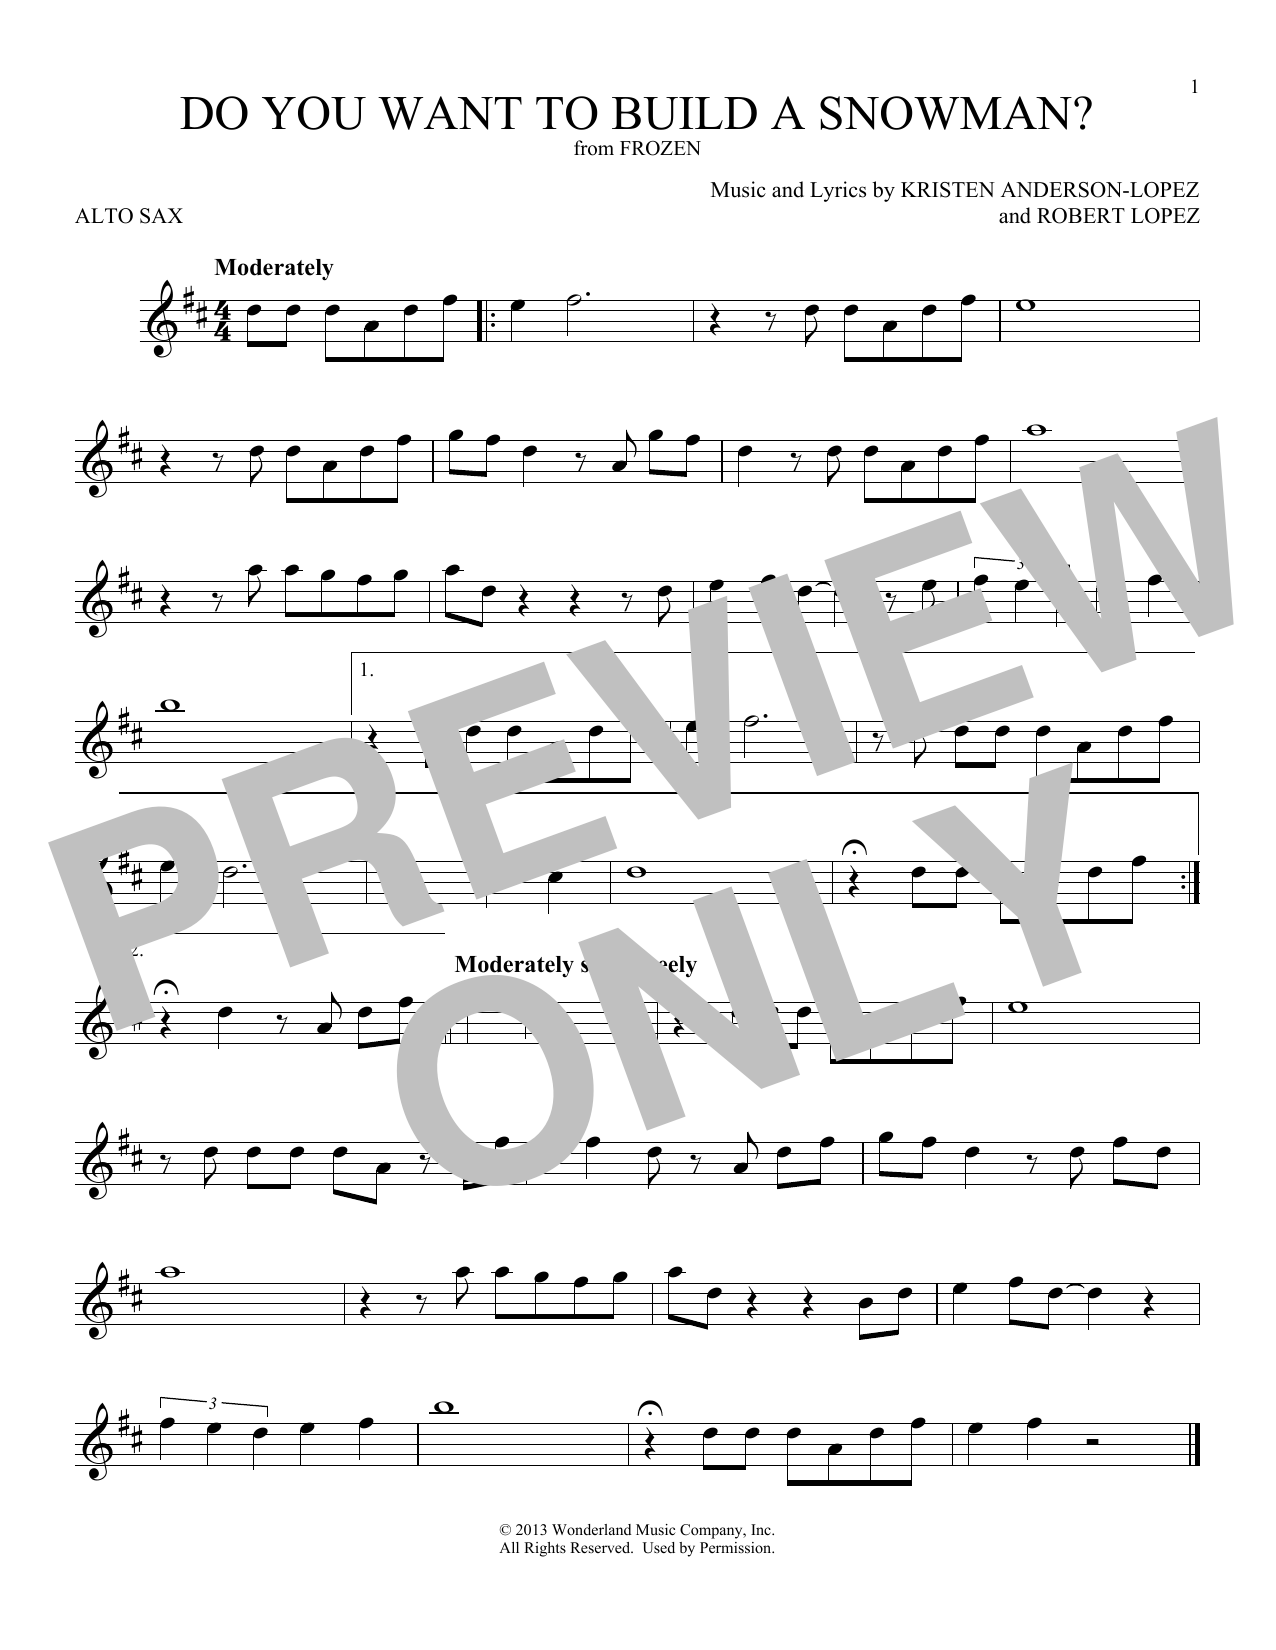 Do You Want To Build A Snowman? (from Disney's Frozen) (Alto Sax Solo)